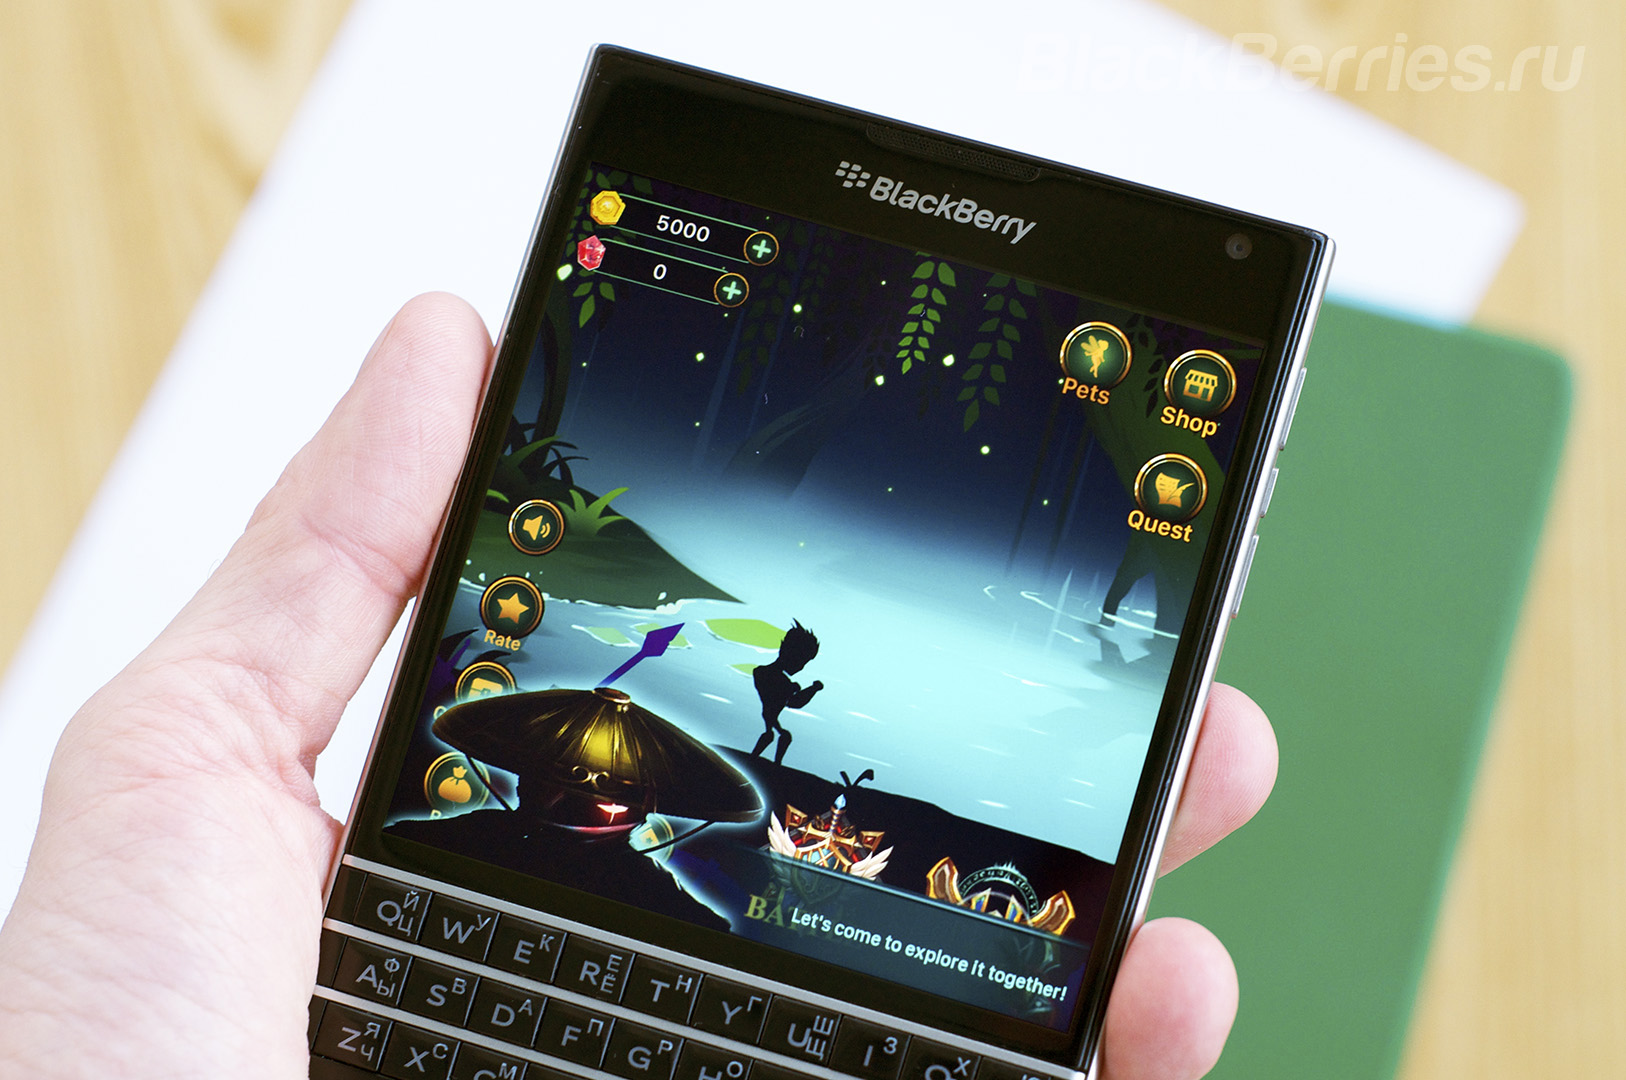 blackberry-dev-1